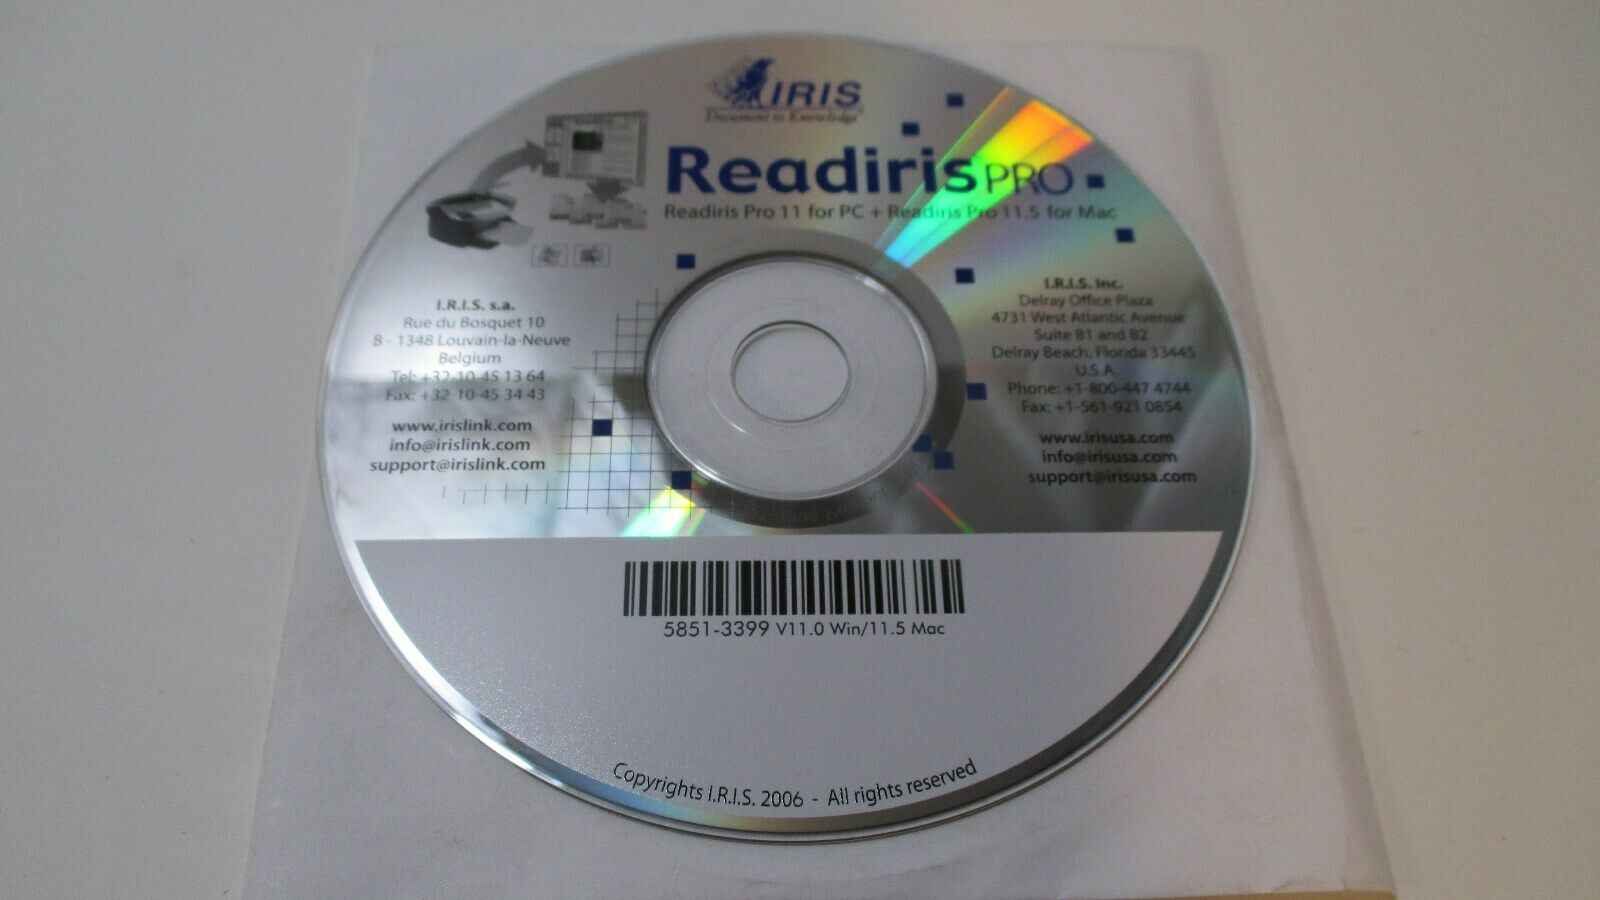 I.R.I.S. Readiris Pro 11 For PC Windows Scan Convert Share ORC Scanning Software